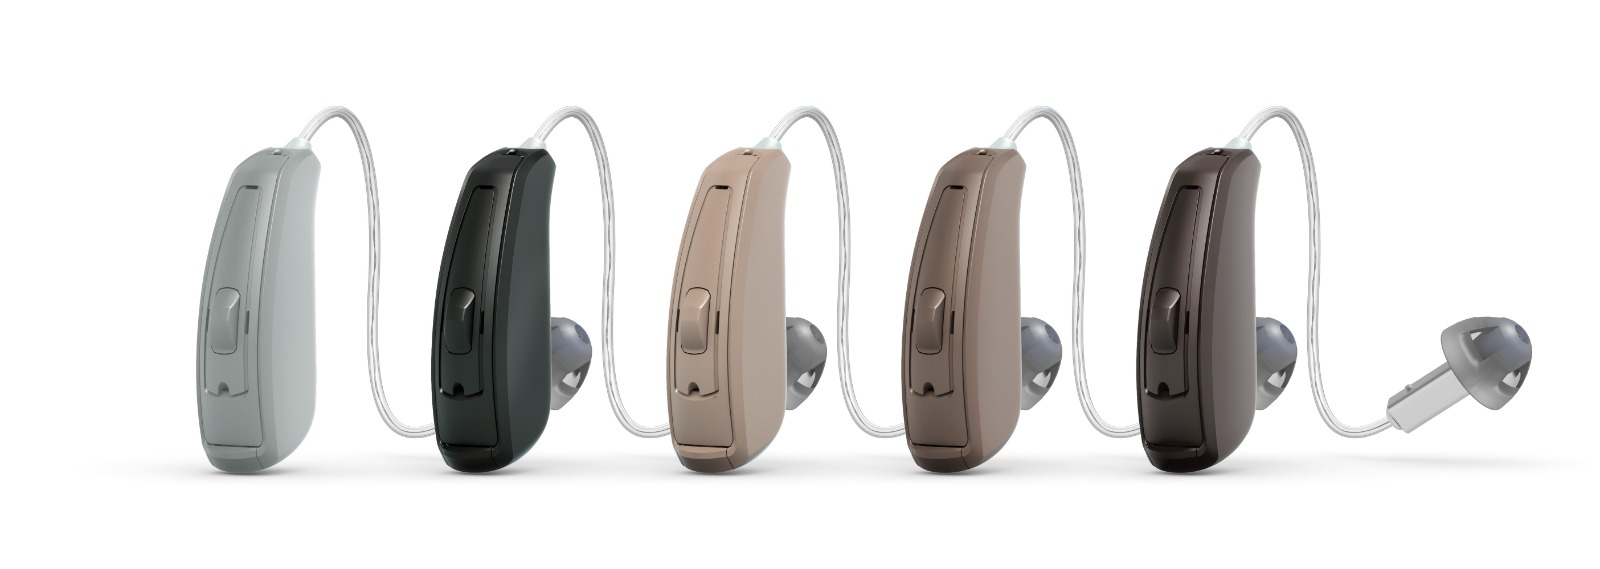 resound key hearing aids colors